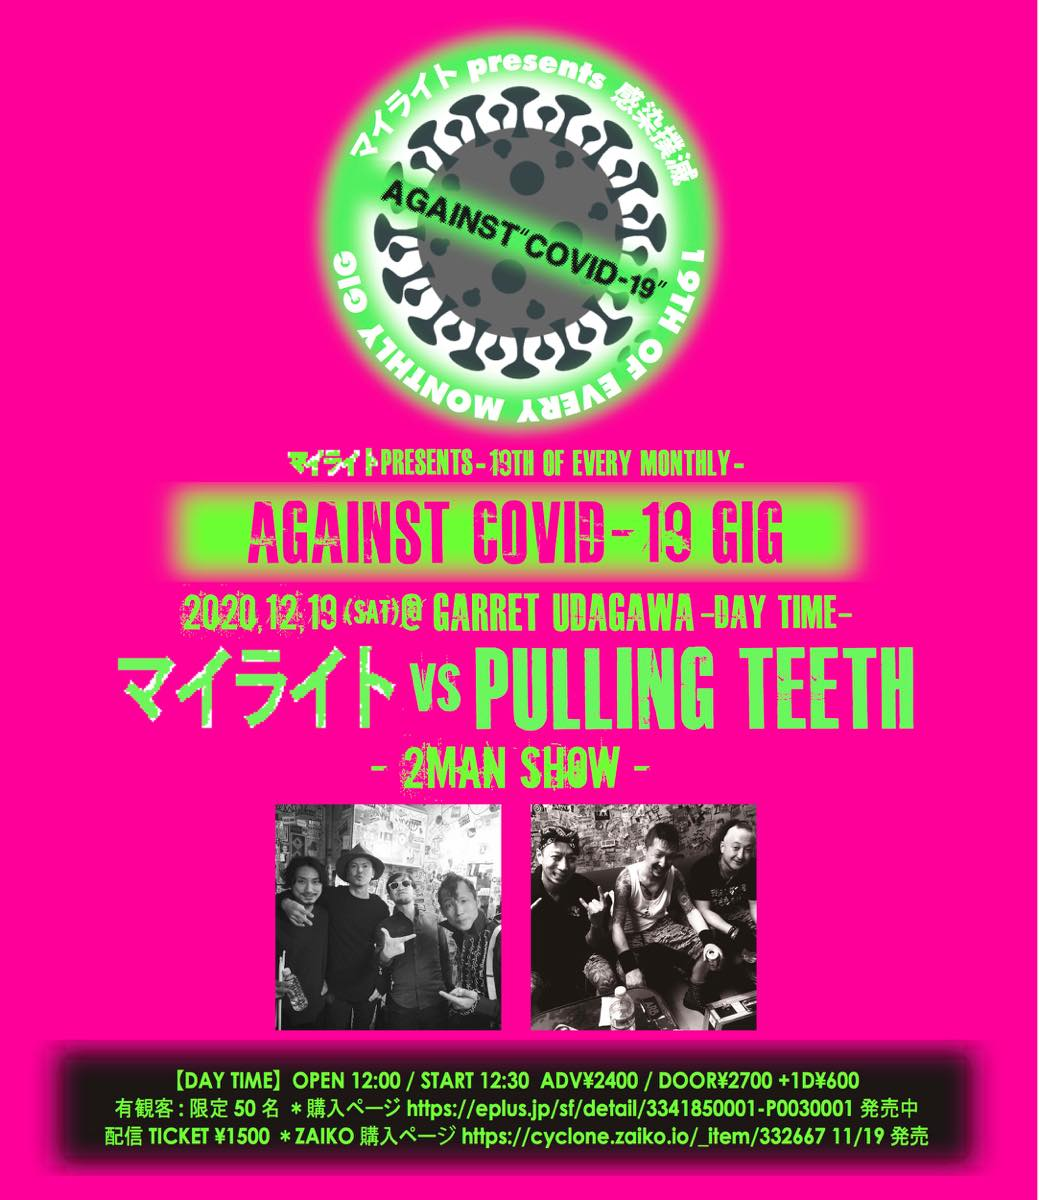 ️マイライト ️PULLING TEETH 〜2MAN SHOW〜